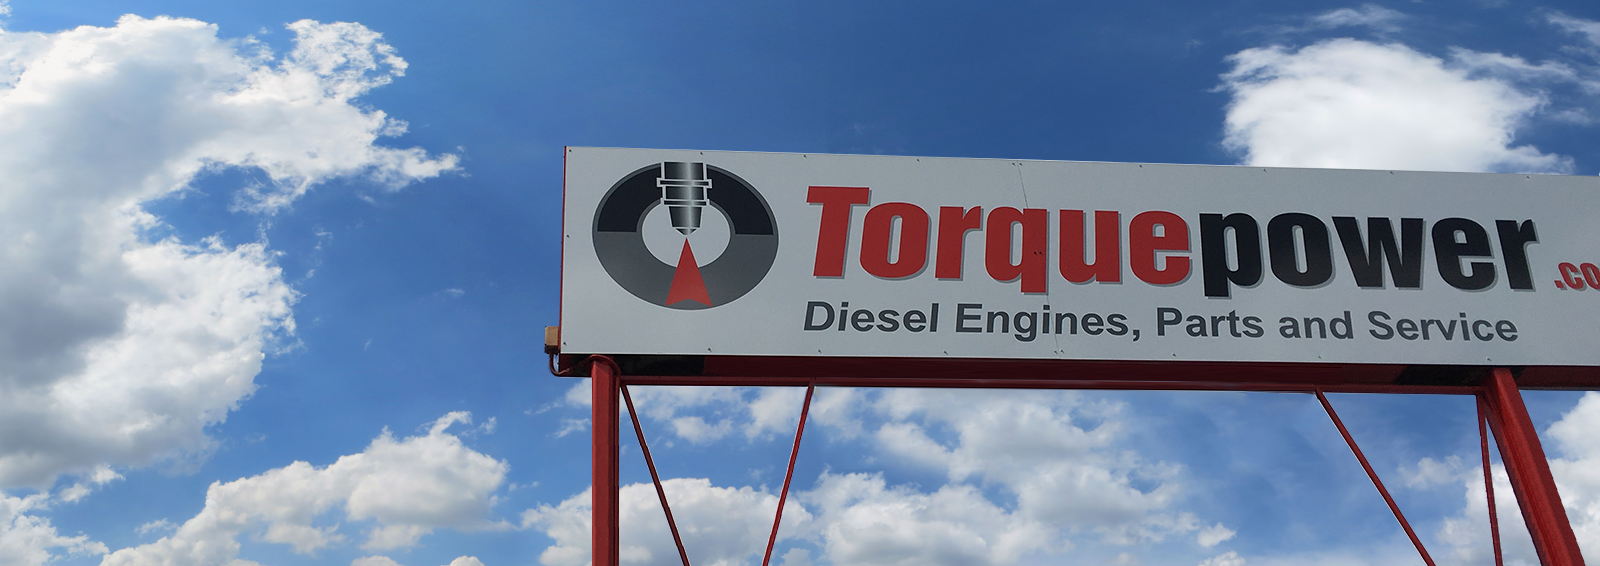 Welcome to Torquepower